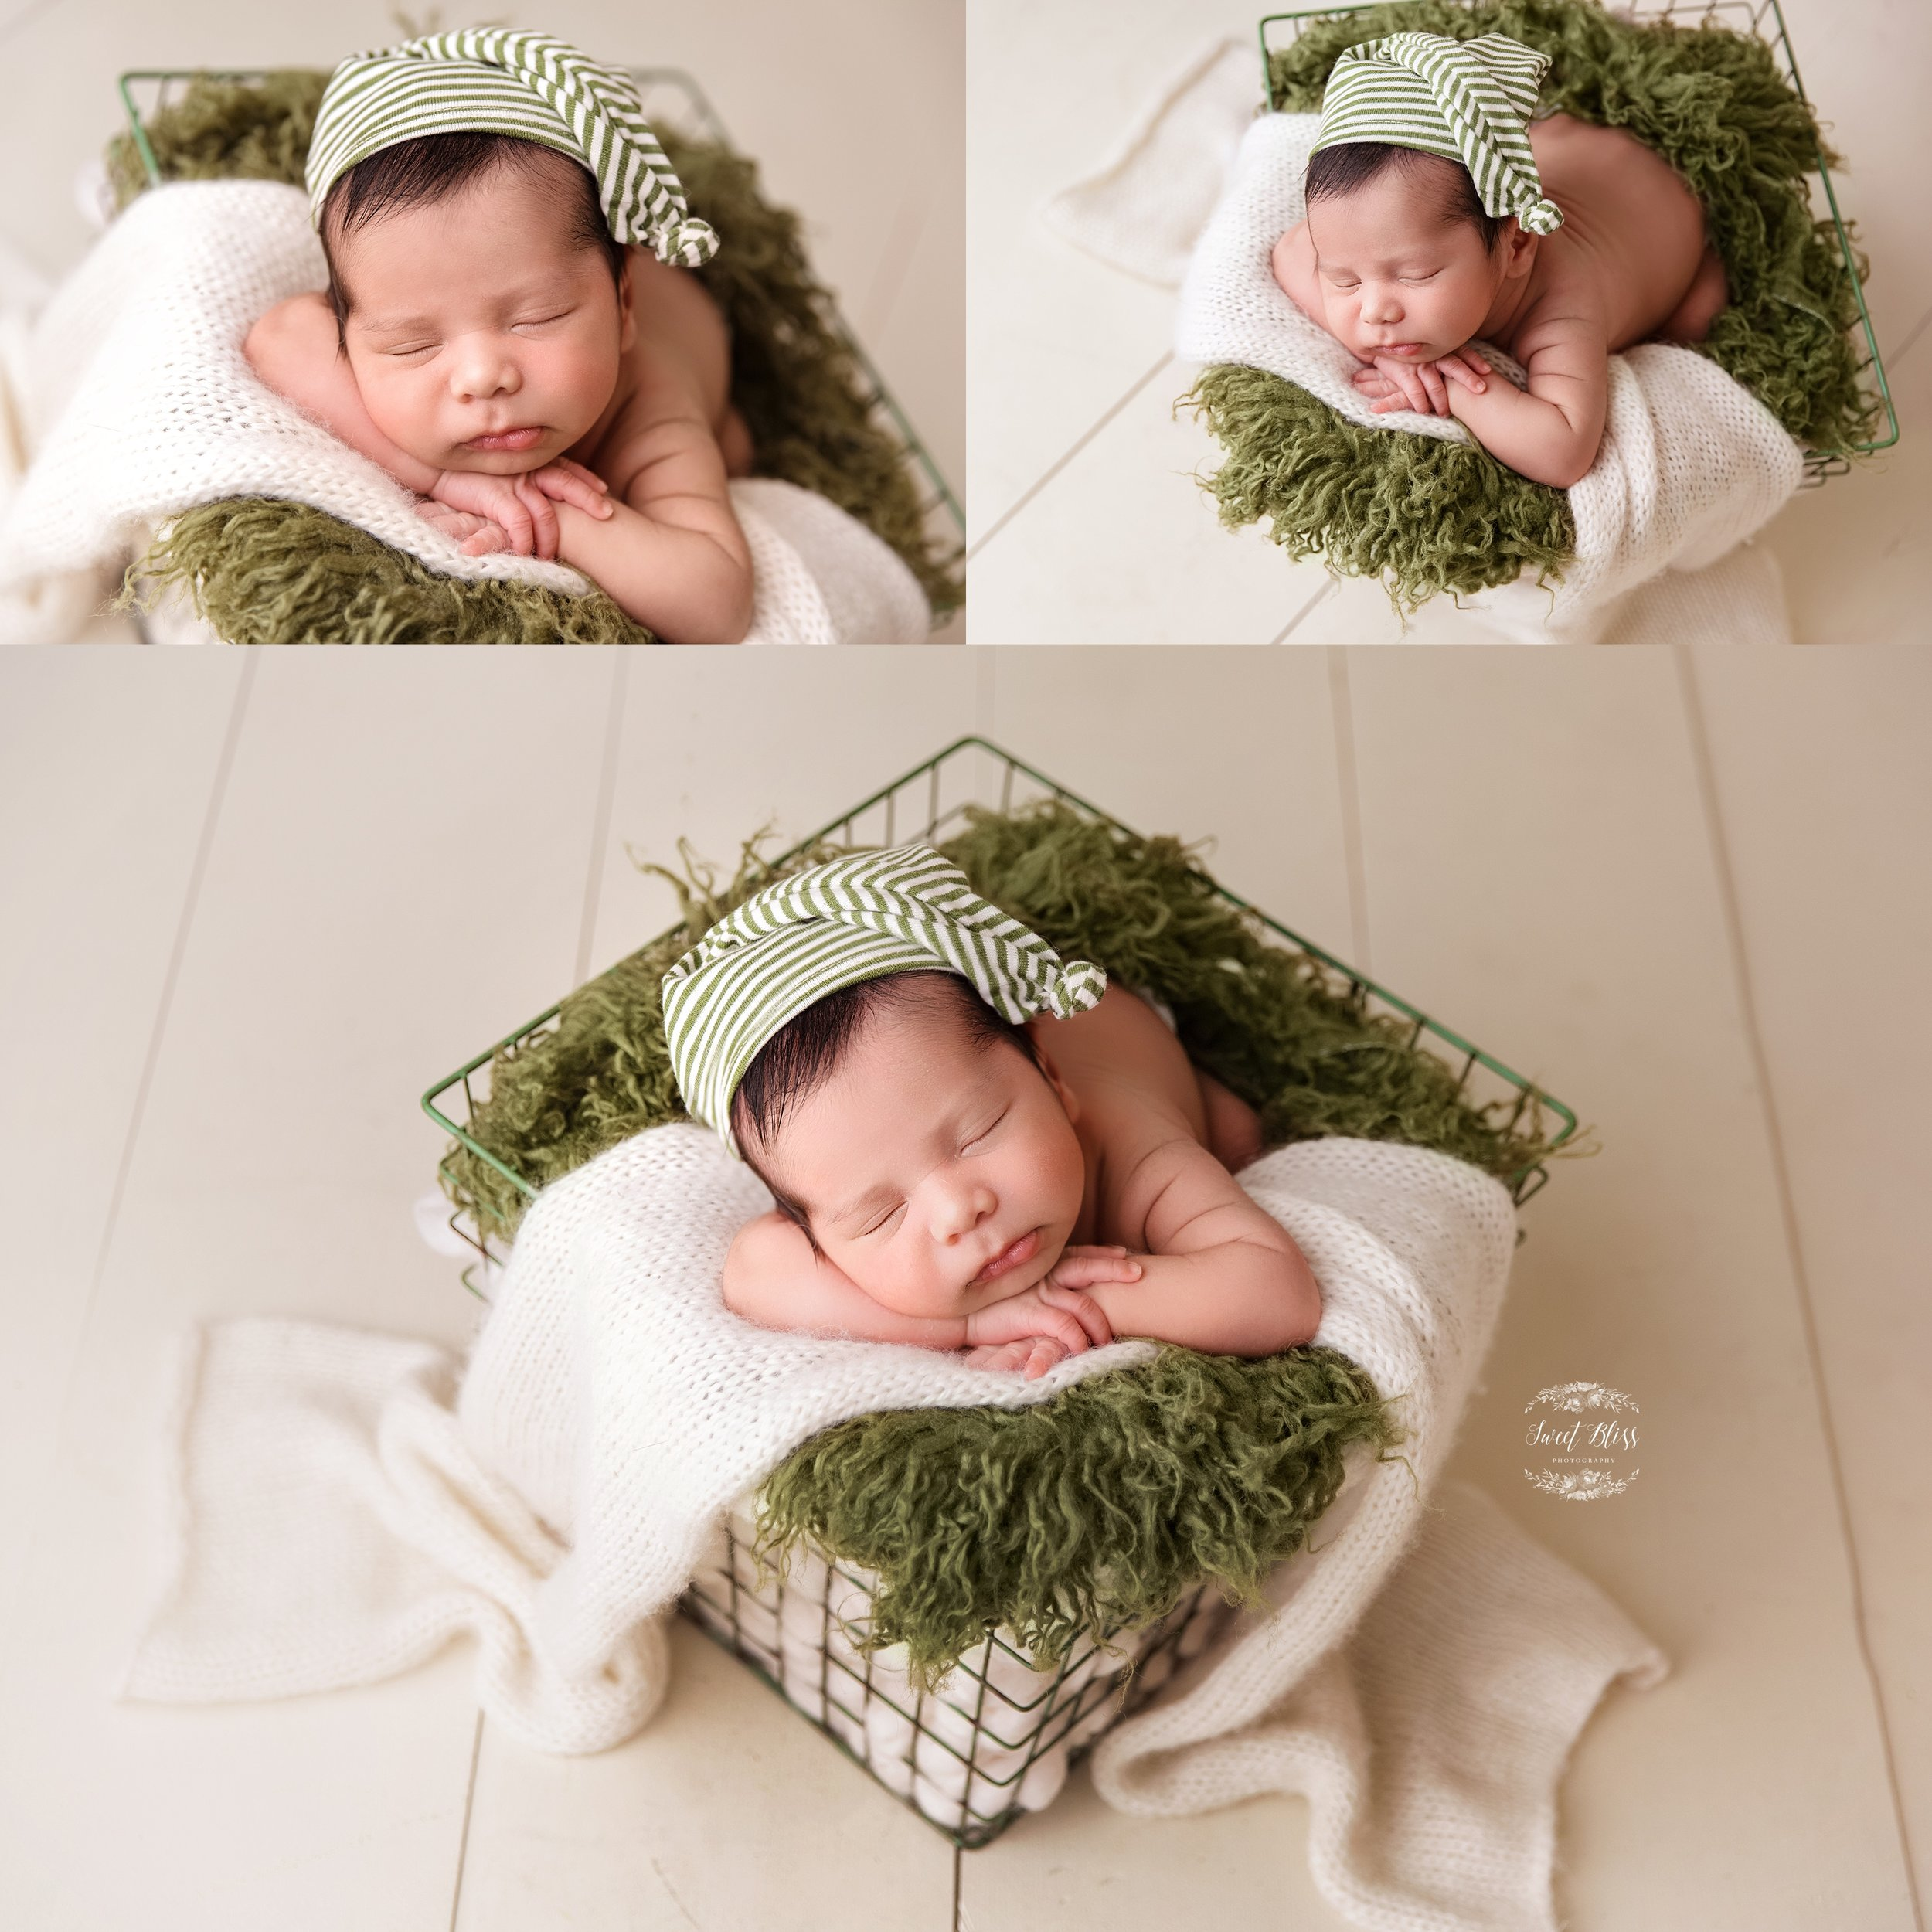 Baltimorenewbornphotographer_sweetblissphoto_greenbasket3.jpg